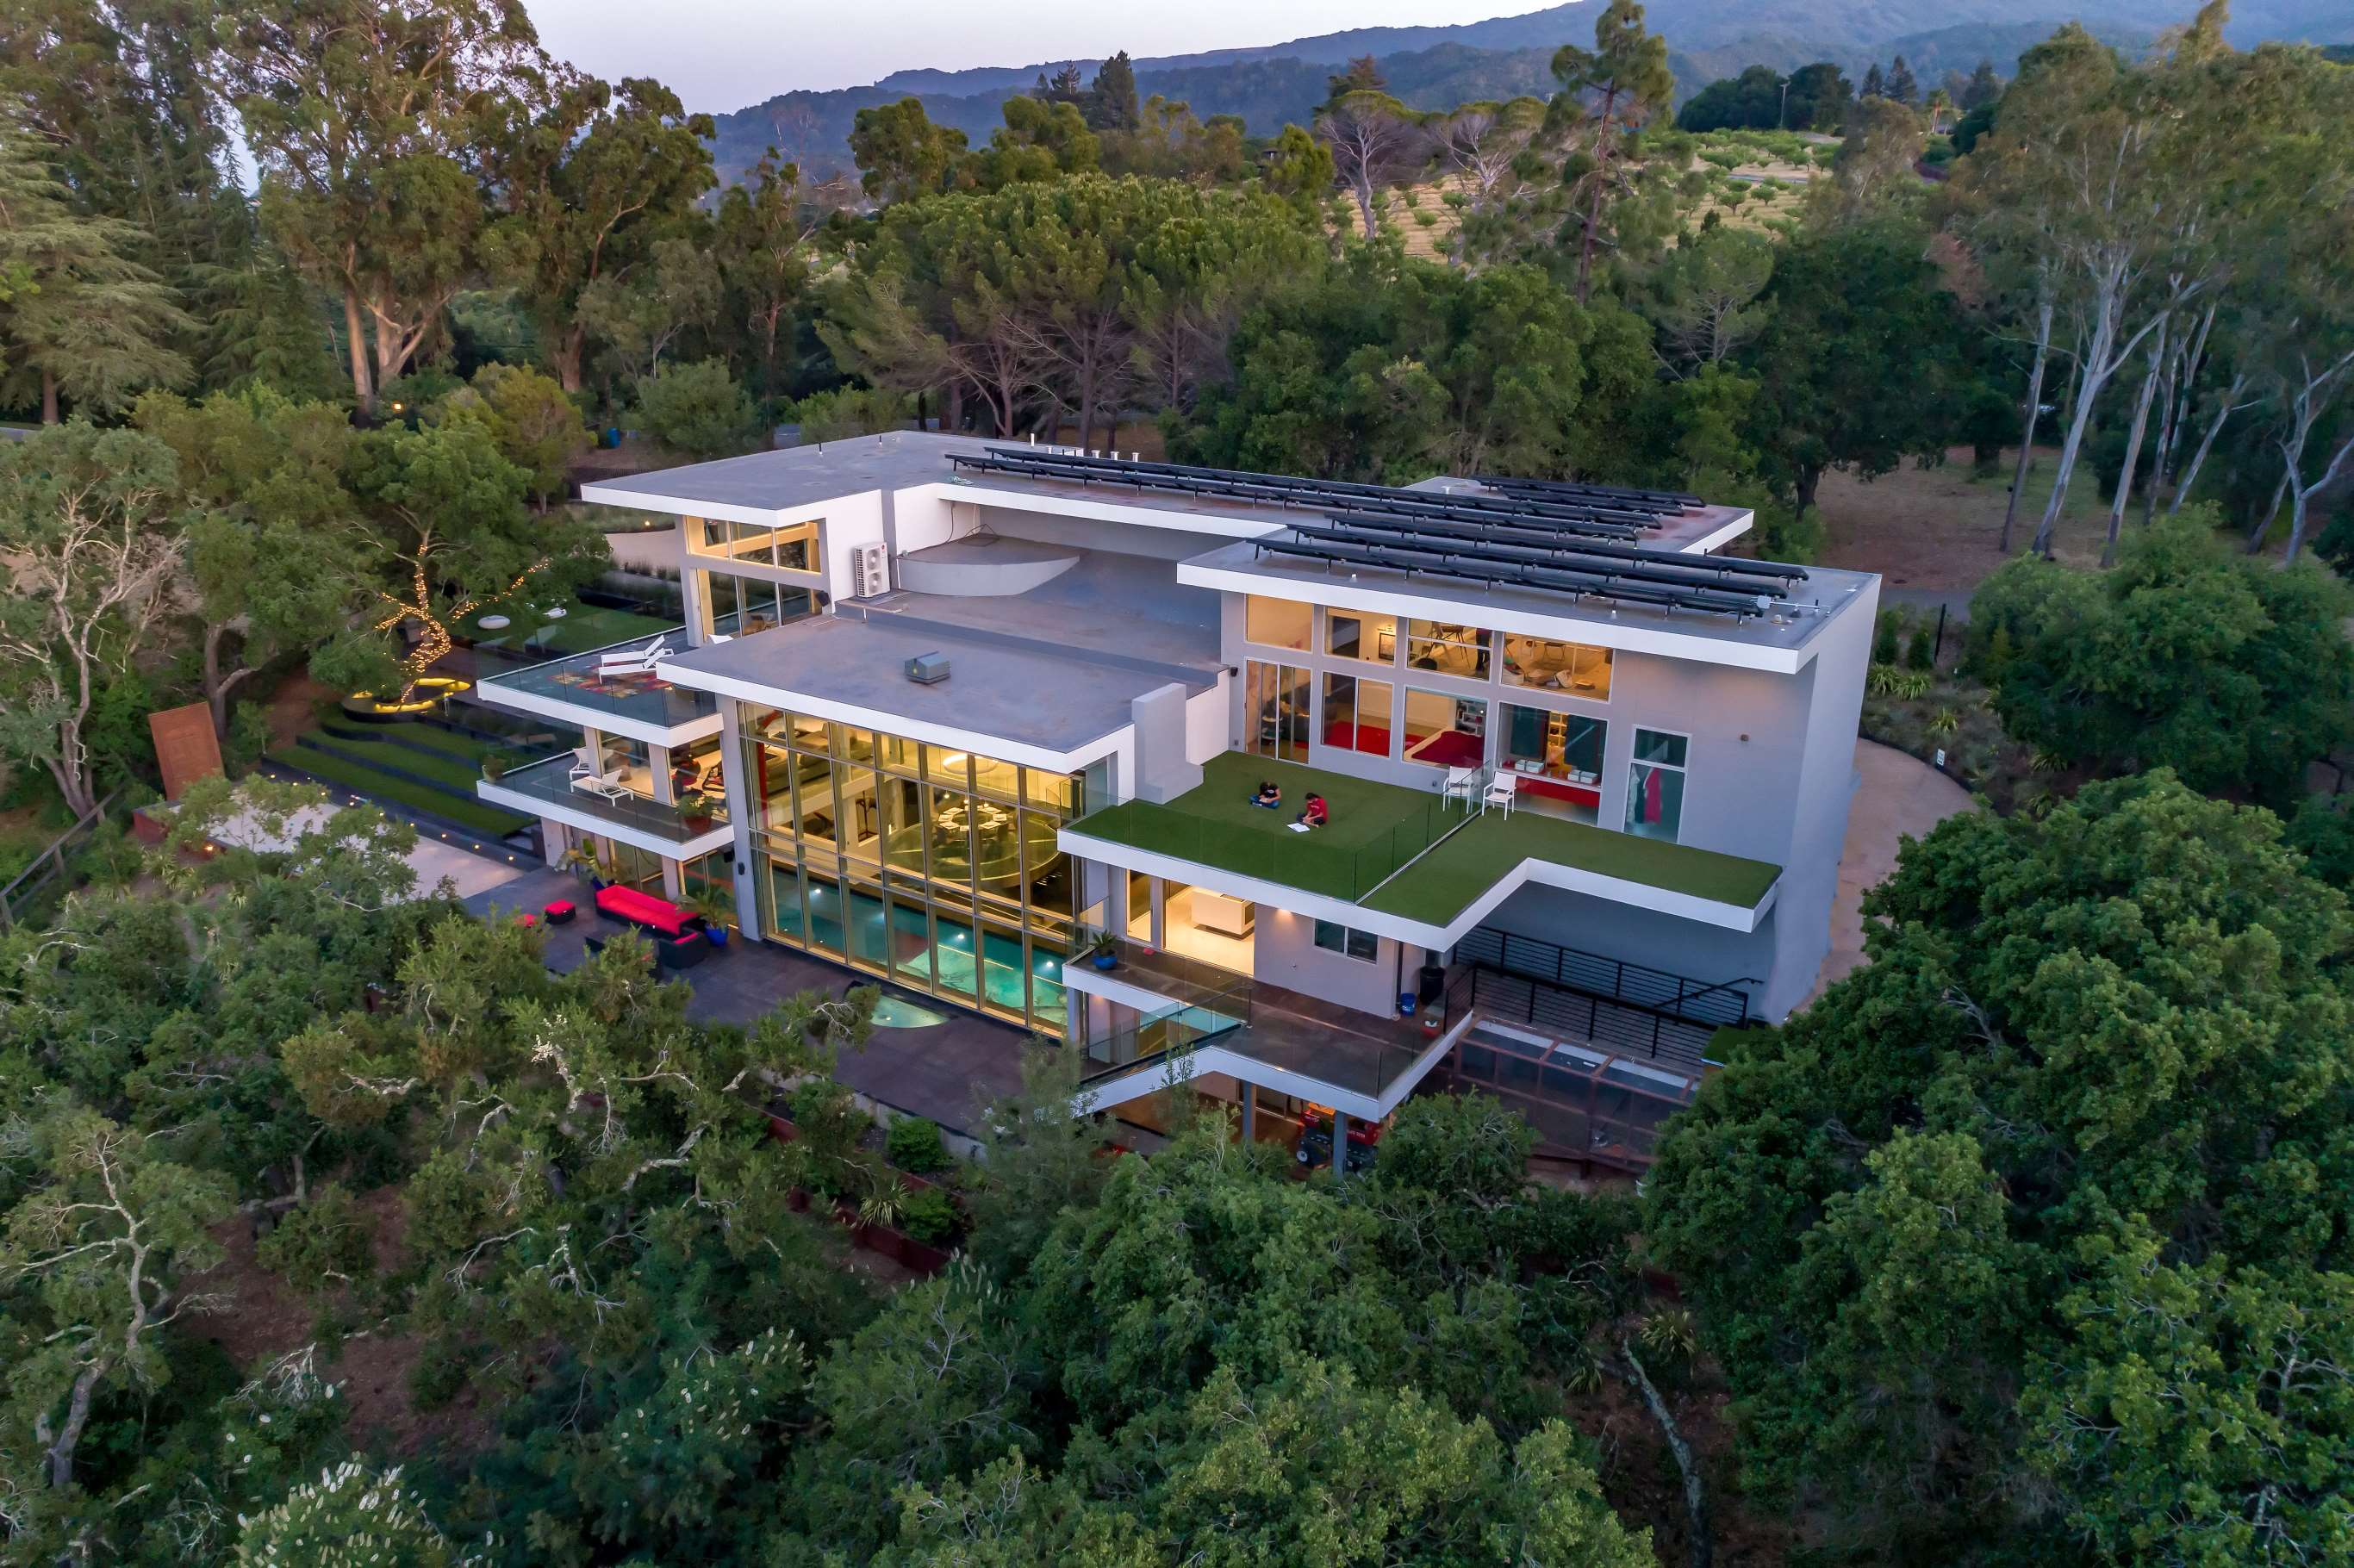 Los Altos hills, California, Best exterior design in Los Altos